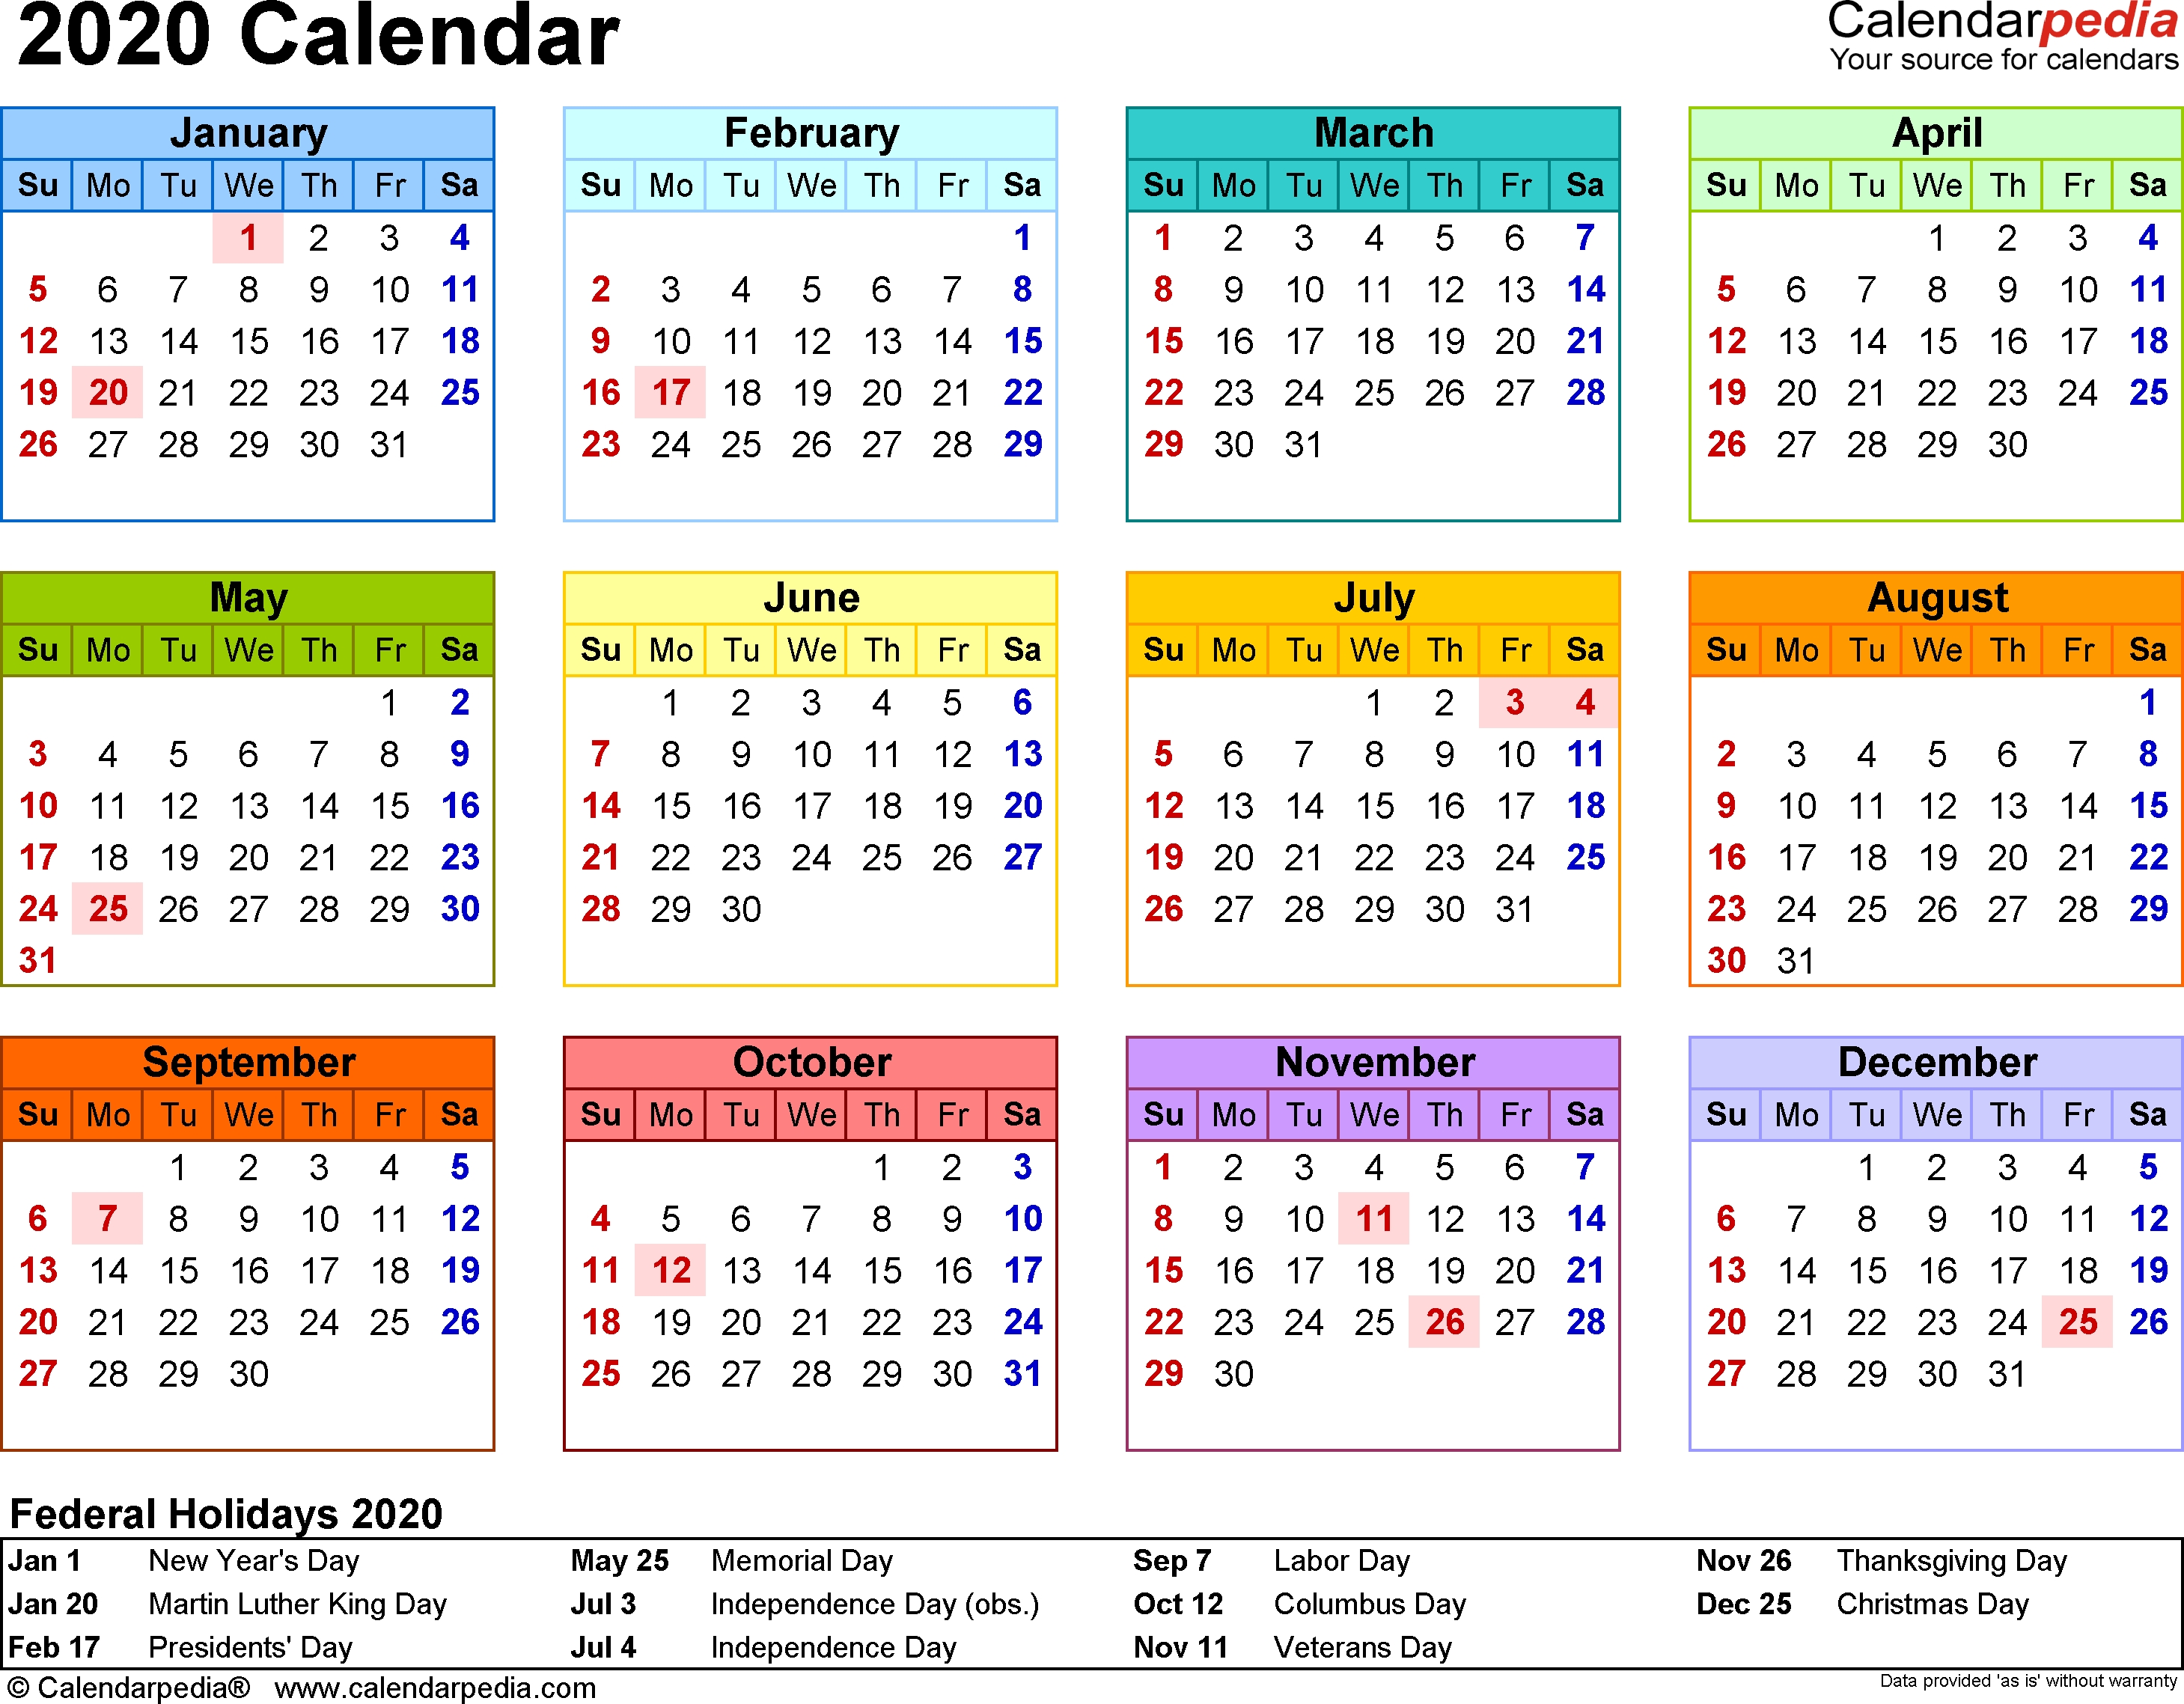 2020 Calendar - Download 18 Free Printable Excel Templates-January 2020 Calendar Hong Kong